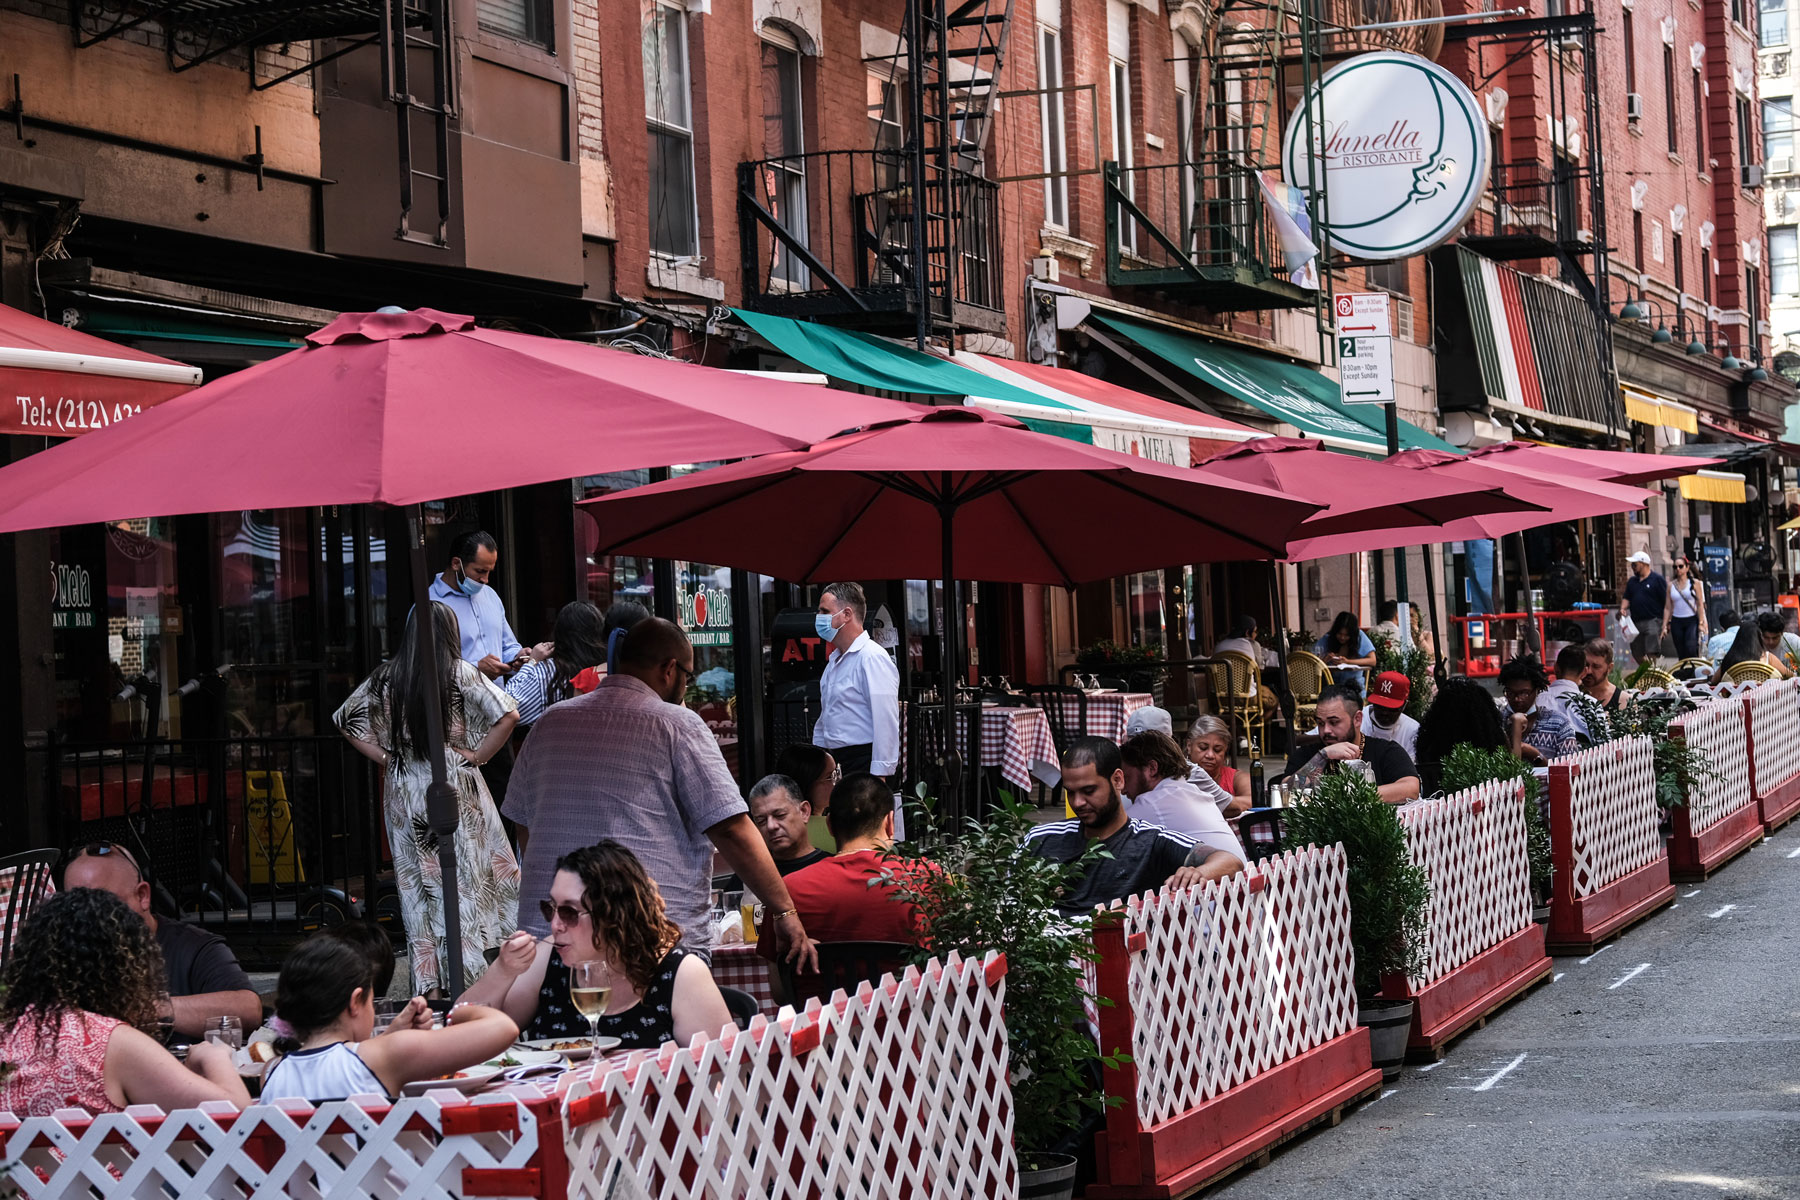 restaurant with outdoor seating on a street in Little Italy